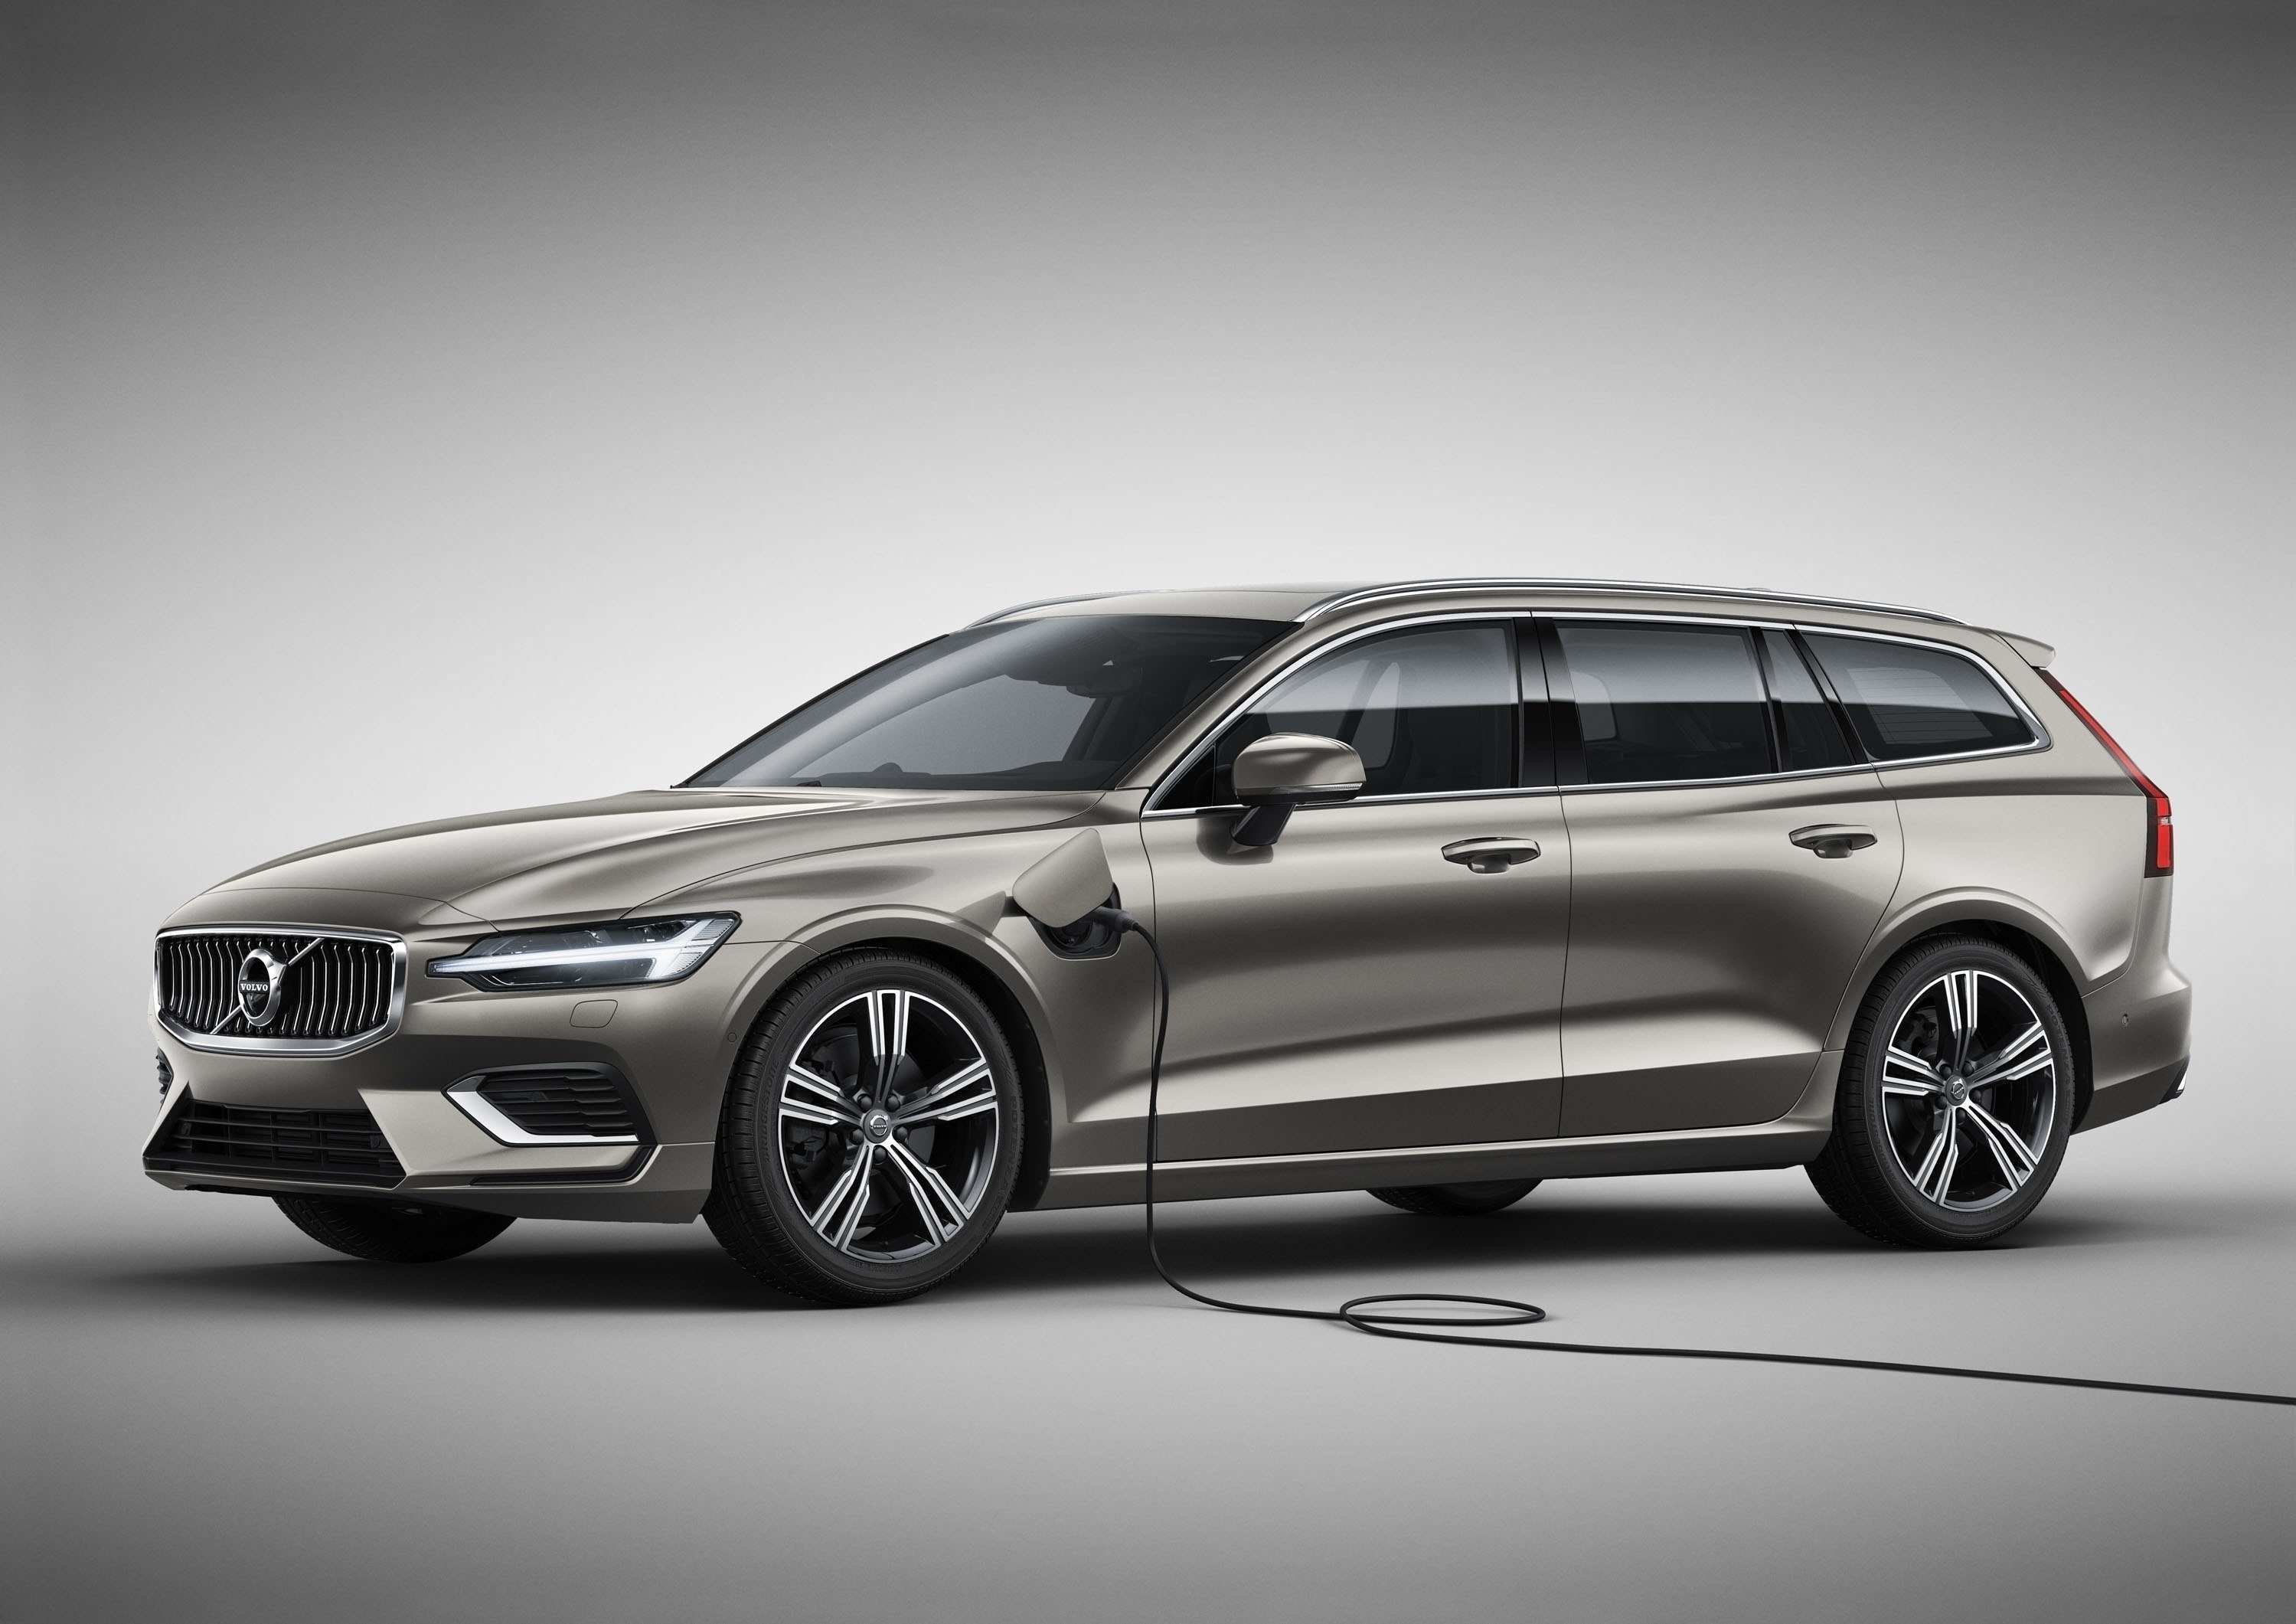 57 The Best Volvo Cx90 2019 Release Research New for Best Volvo Cx90 2019 Release